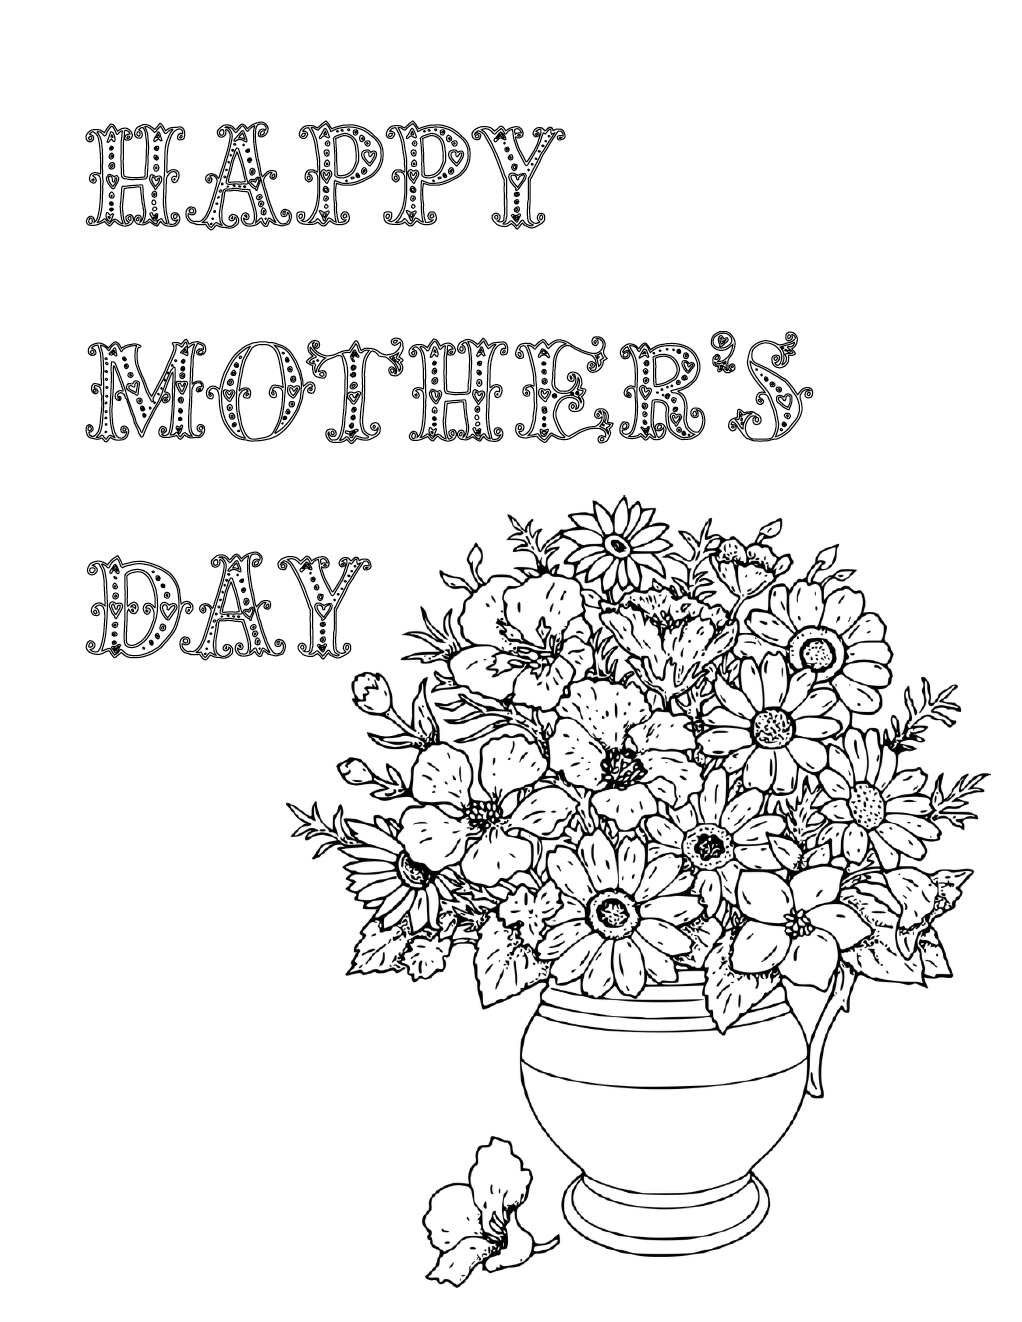 Free Printable Mother's Day Coloring Pages 4 Designs